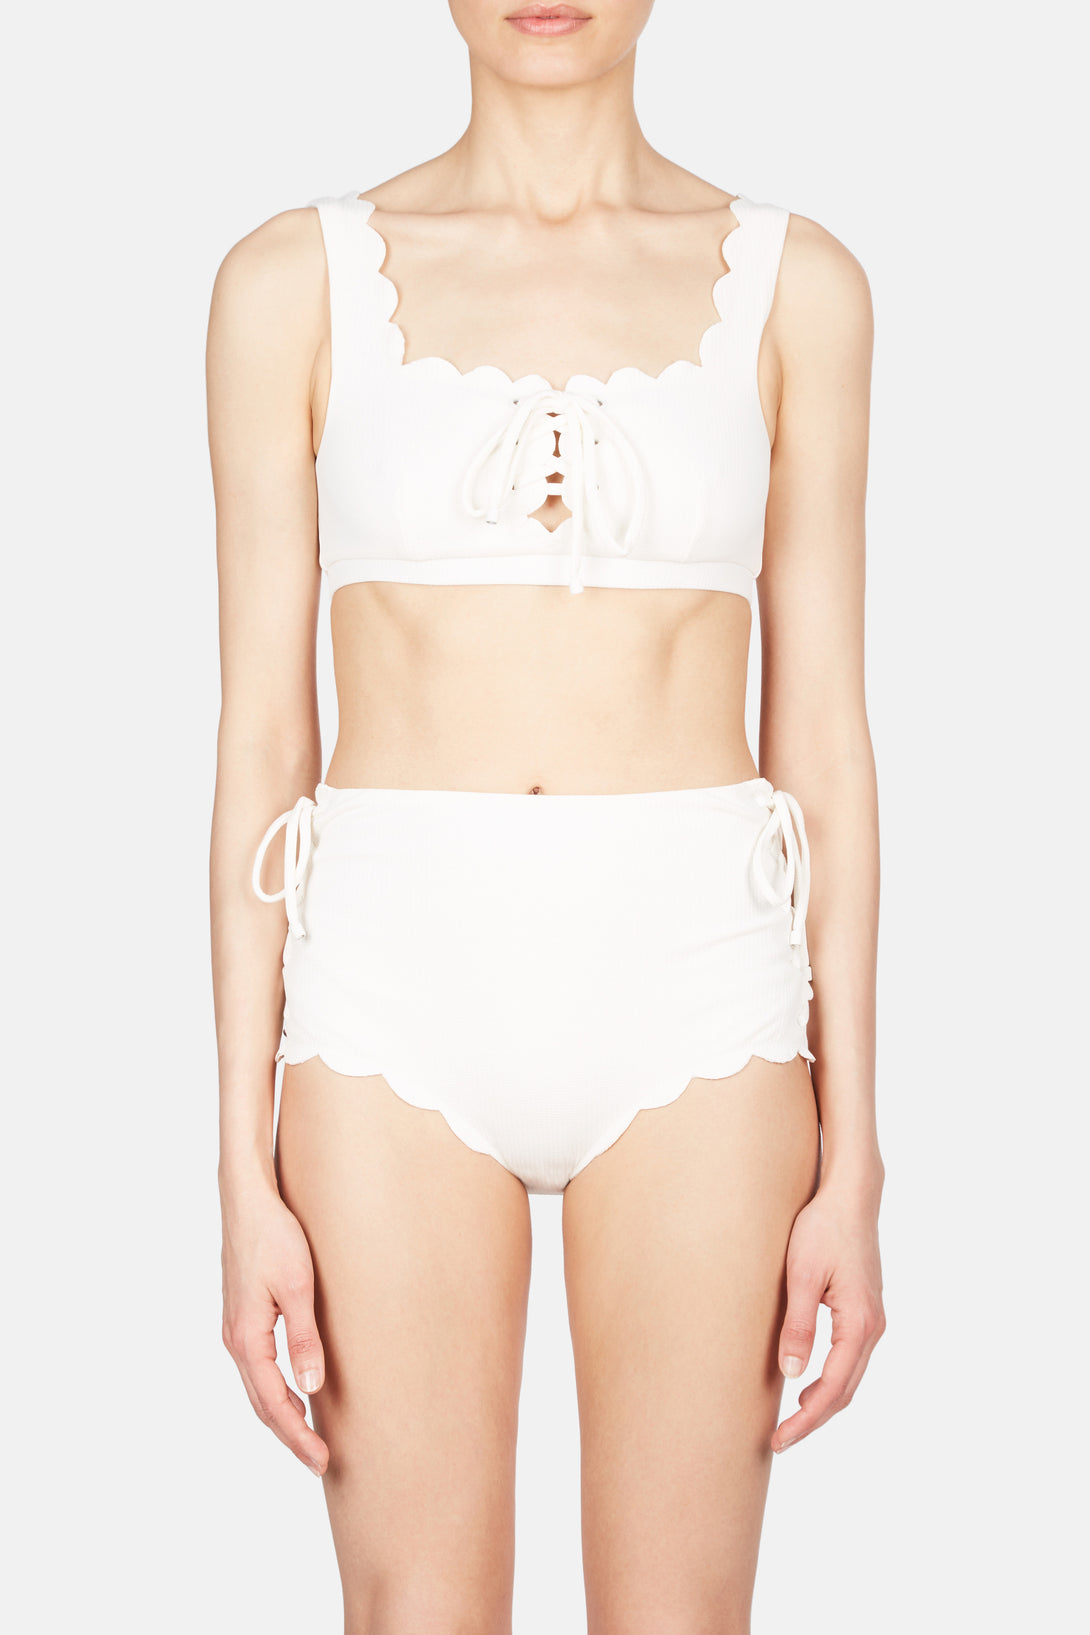 Palm Springs Tie Bikini Top - Coconut